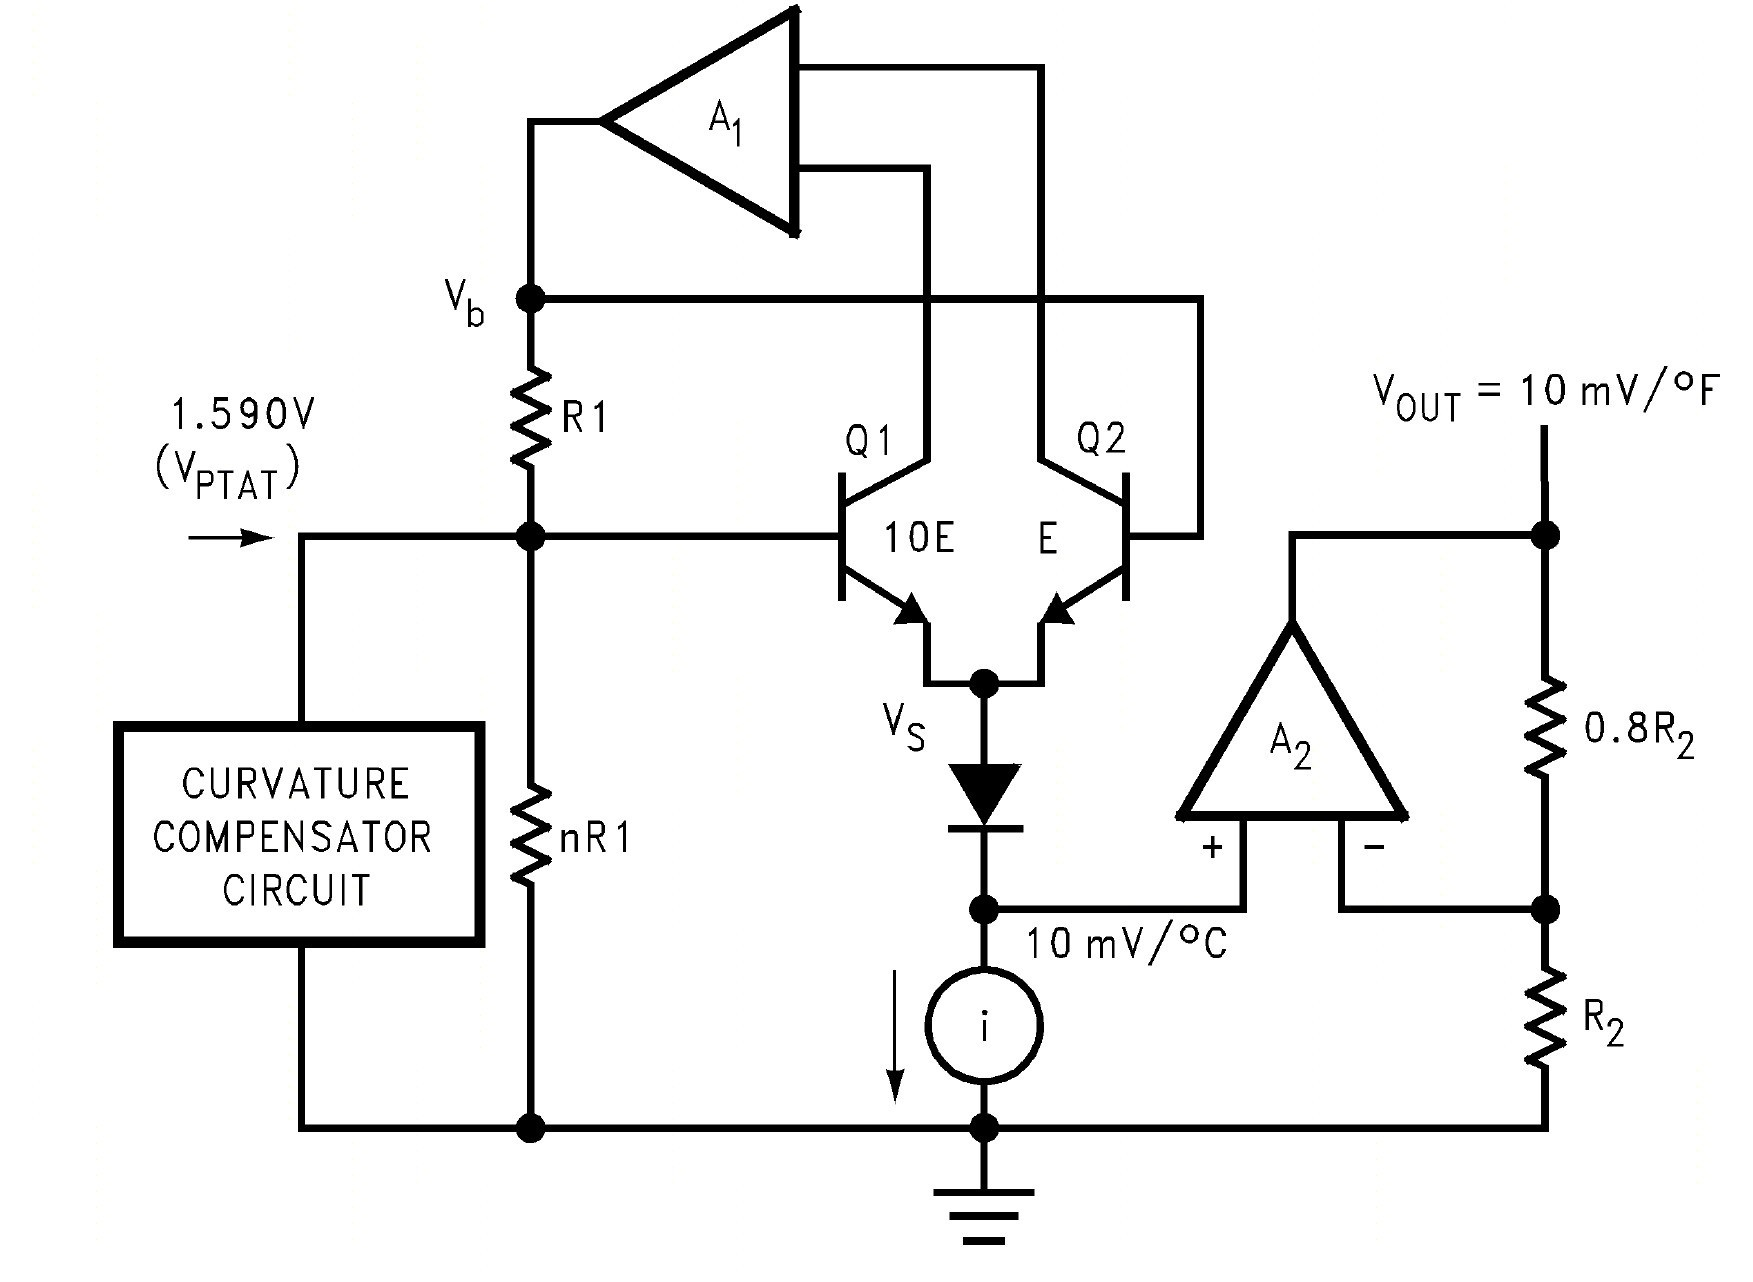 Basic Motor Diagram Fresh Basic Wiring Diagram Diagram Of Basic Motor Diagram